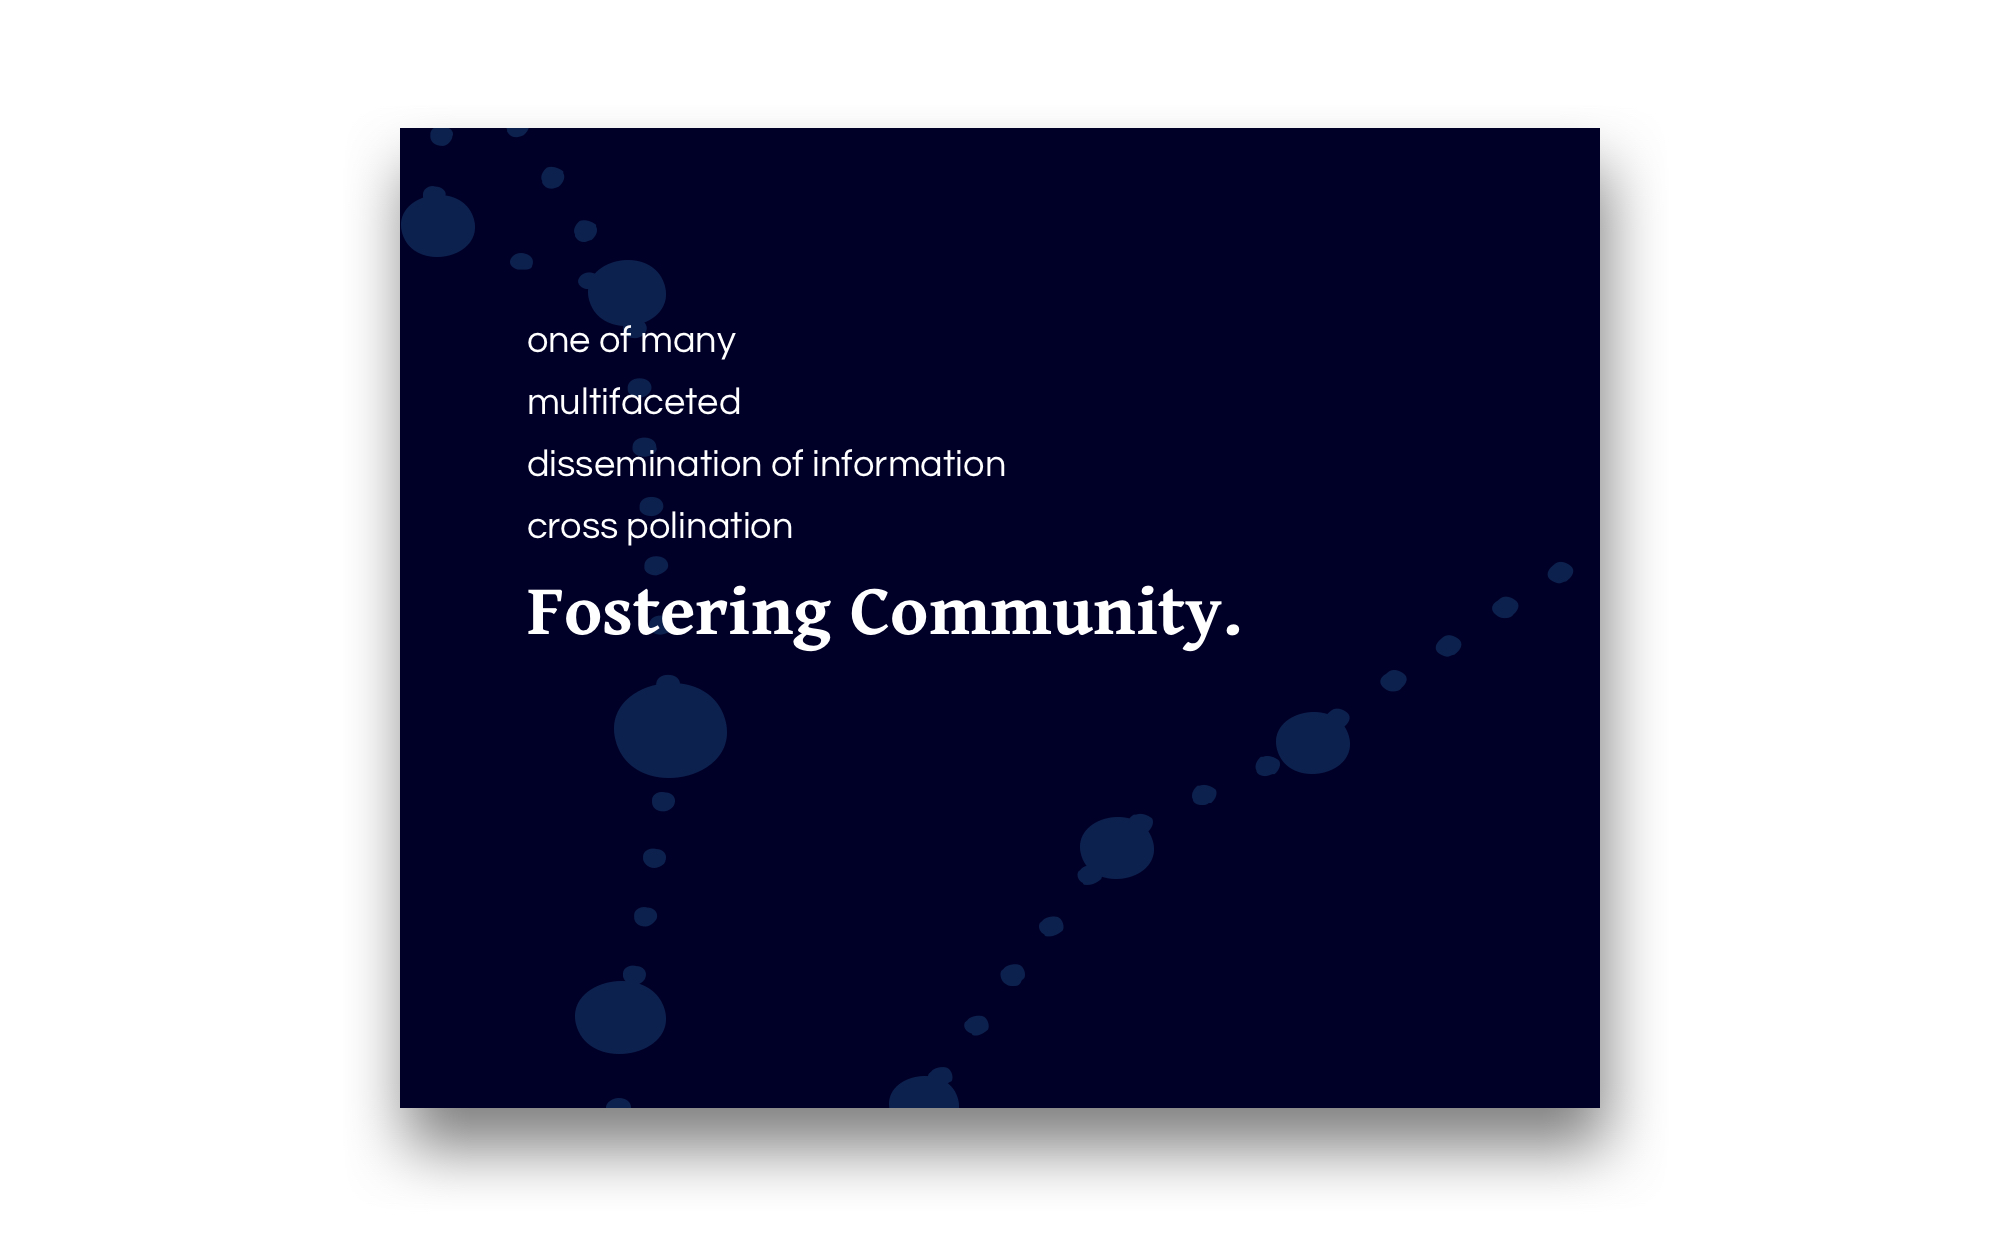 2-fosteringcommunity-cover copy.jpg